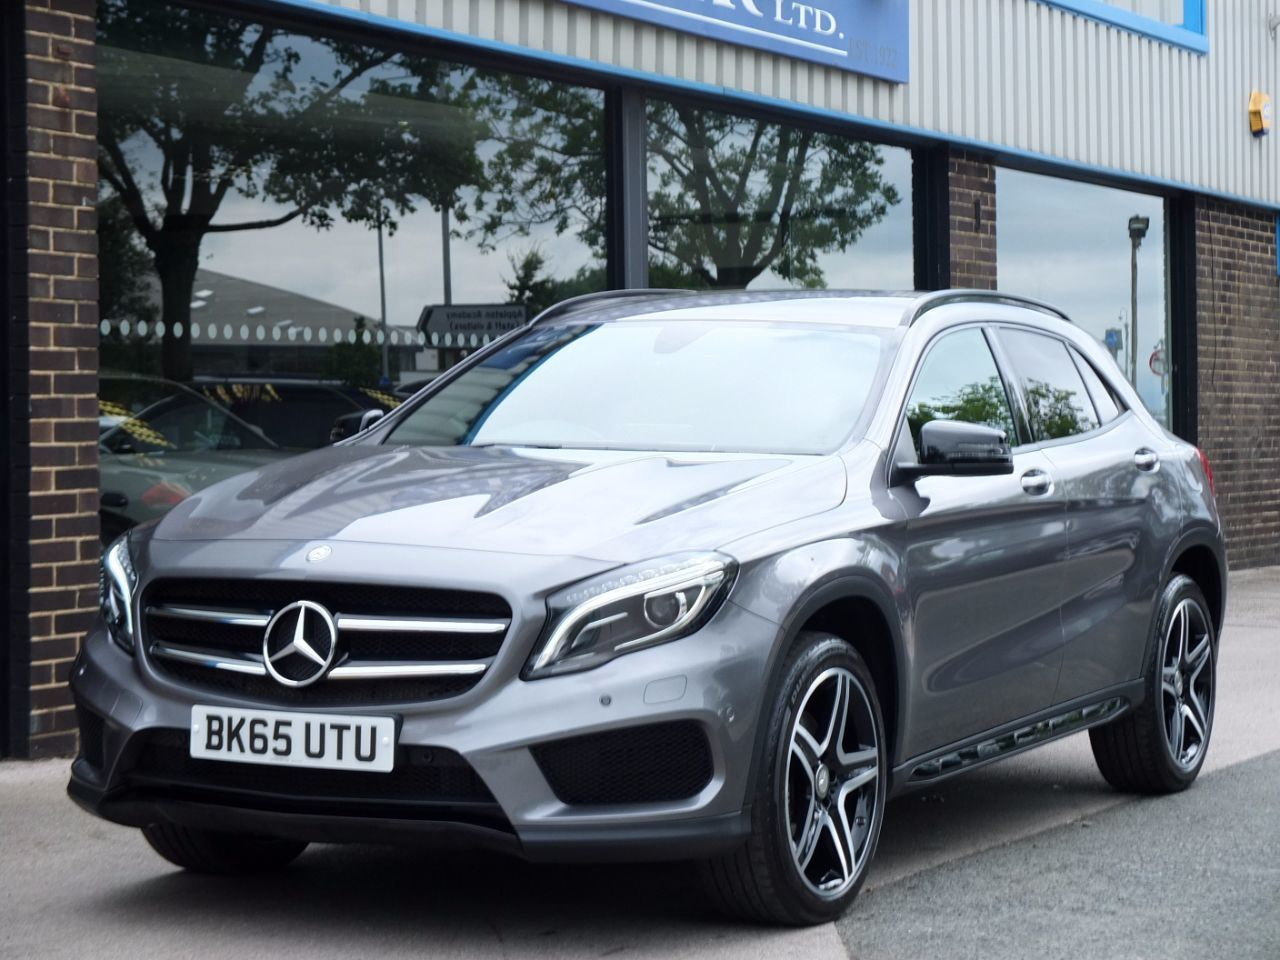 Mercedes-Benz Gla Class 2.1 GLA 220d 4Matic AMG Line Auto [Premium] Estate Diesel Mountain Grey MetallicMercedes-Benz Gla Class 2.1 GLA 220d 4Matic AMG Line Auto [Premium] Estate Diesel Mountain Grey Metallic at fa Roper Ltd Bradford